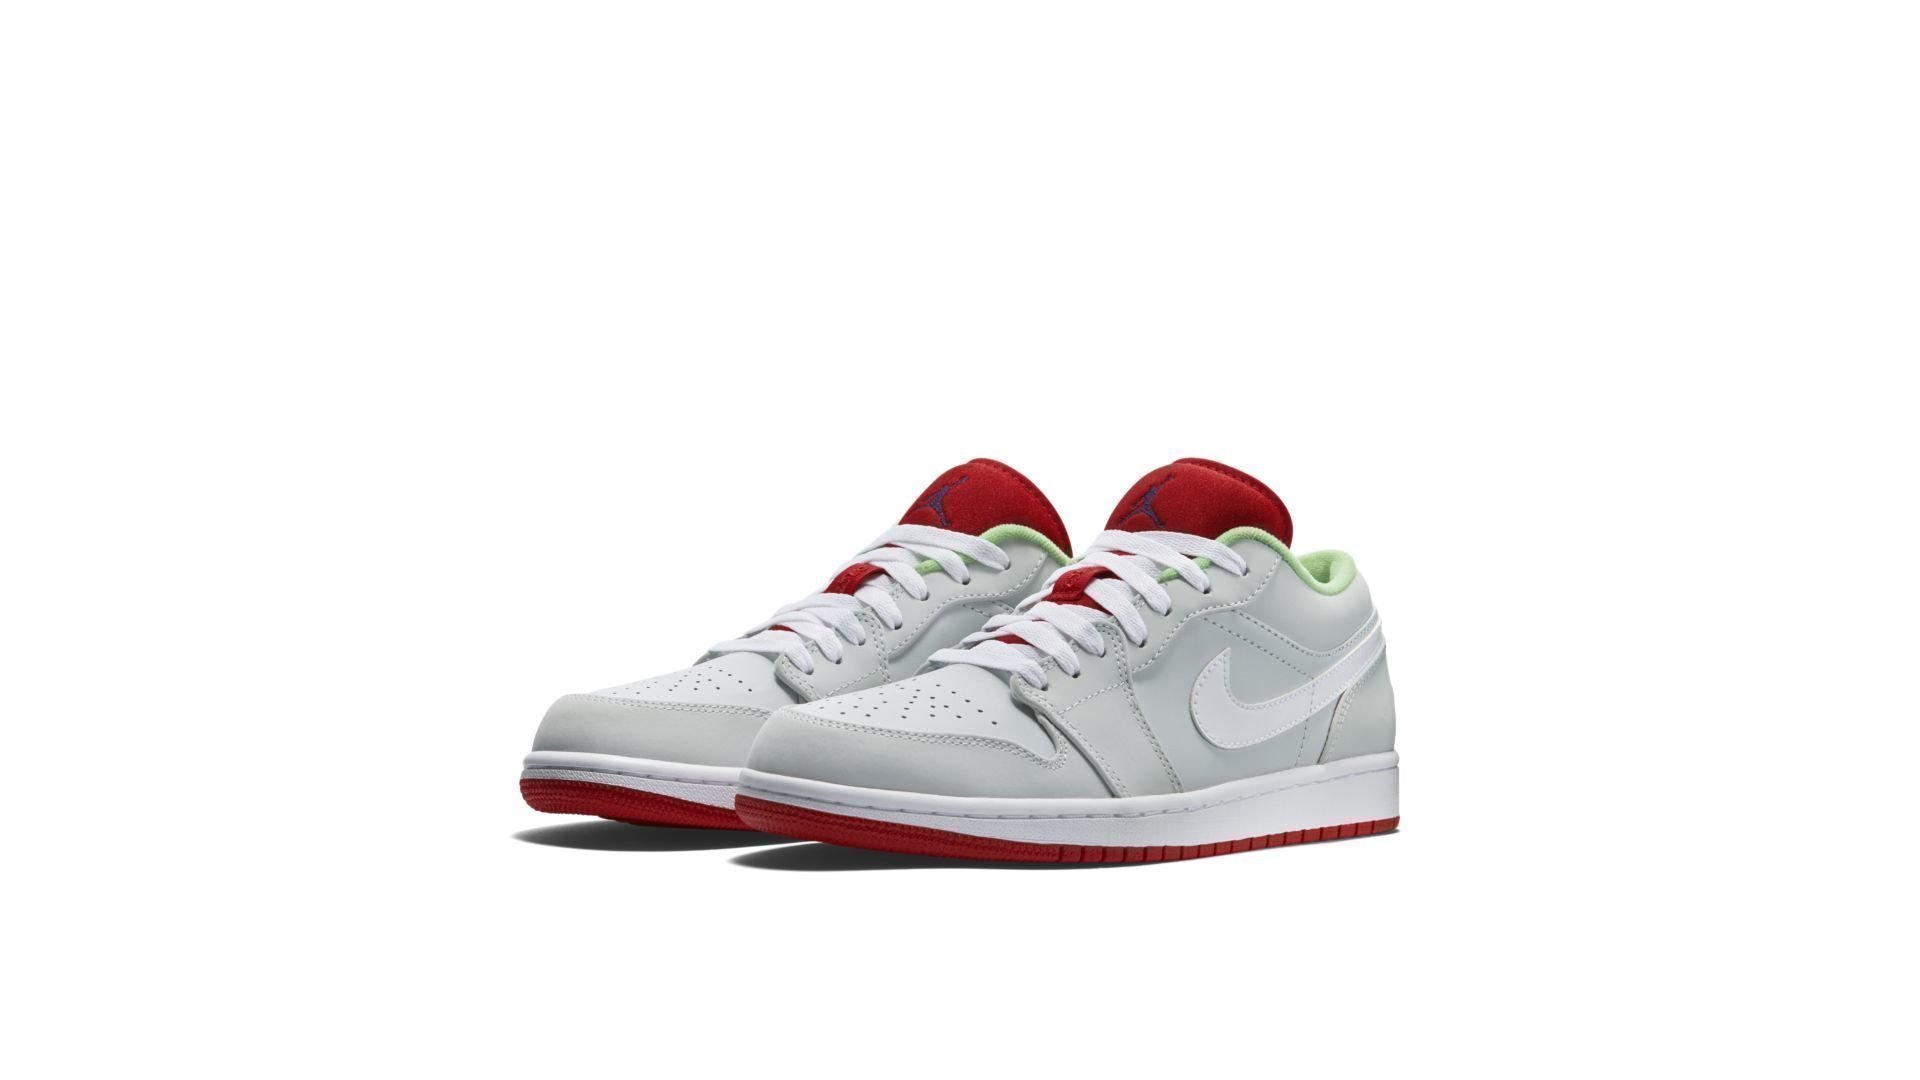 Jordan 1 Retro Low Hare Jordan (2015) (553558-021)